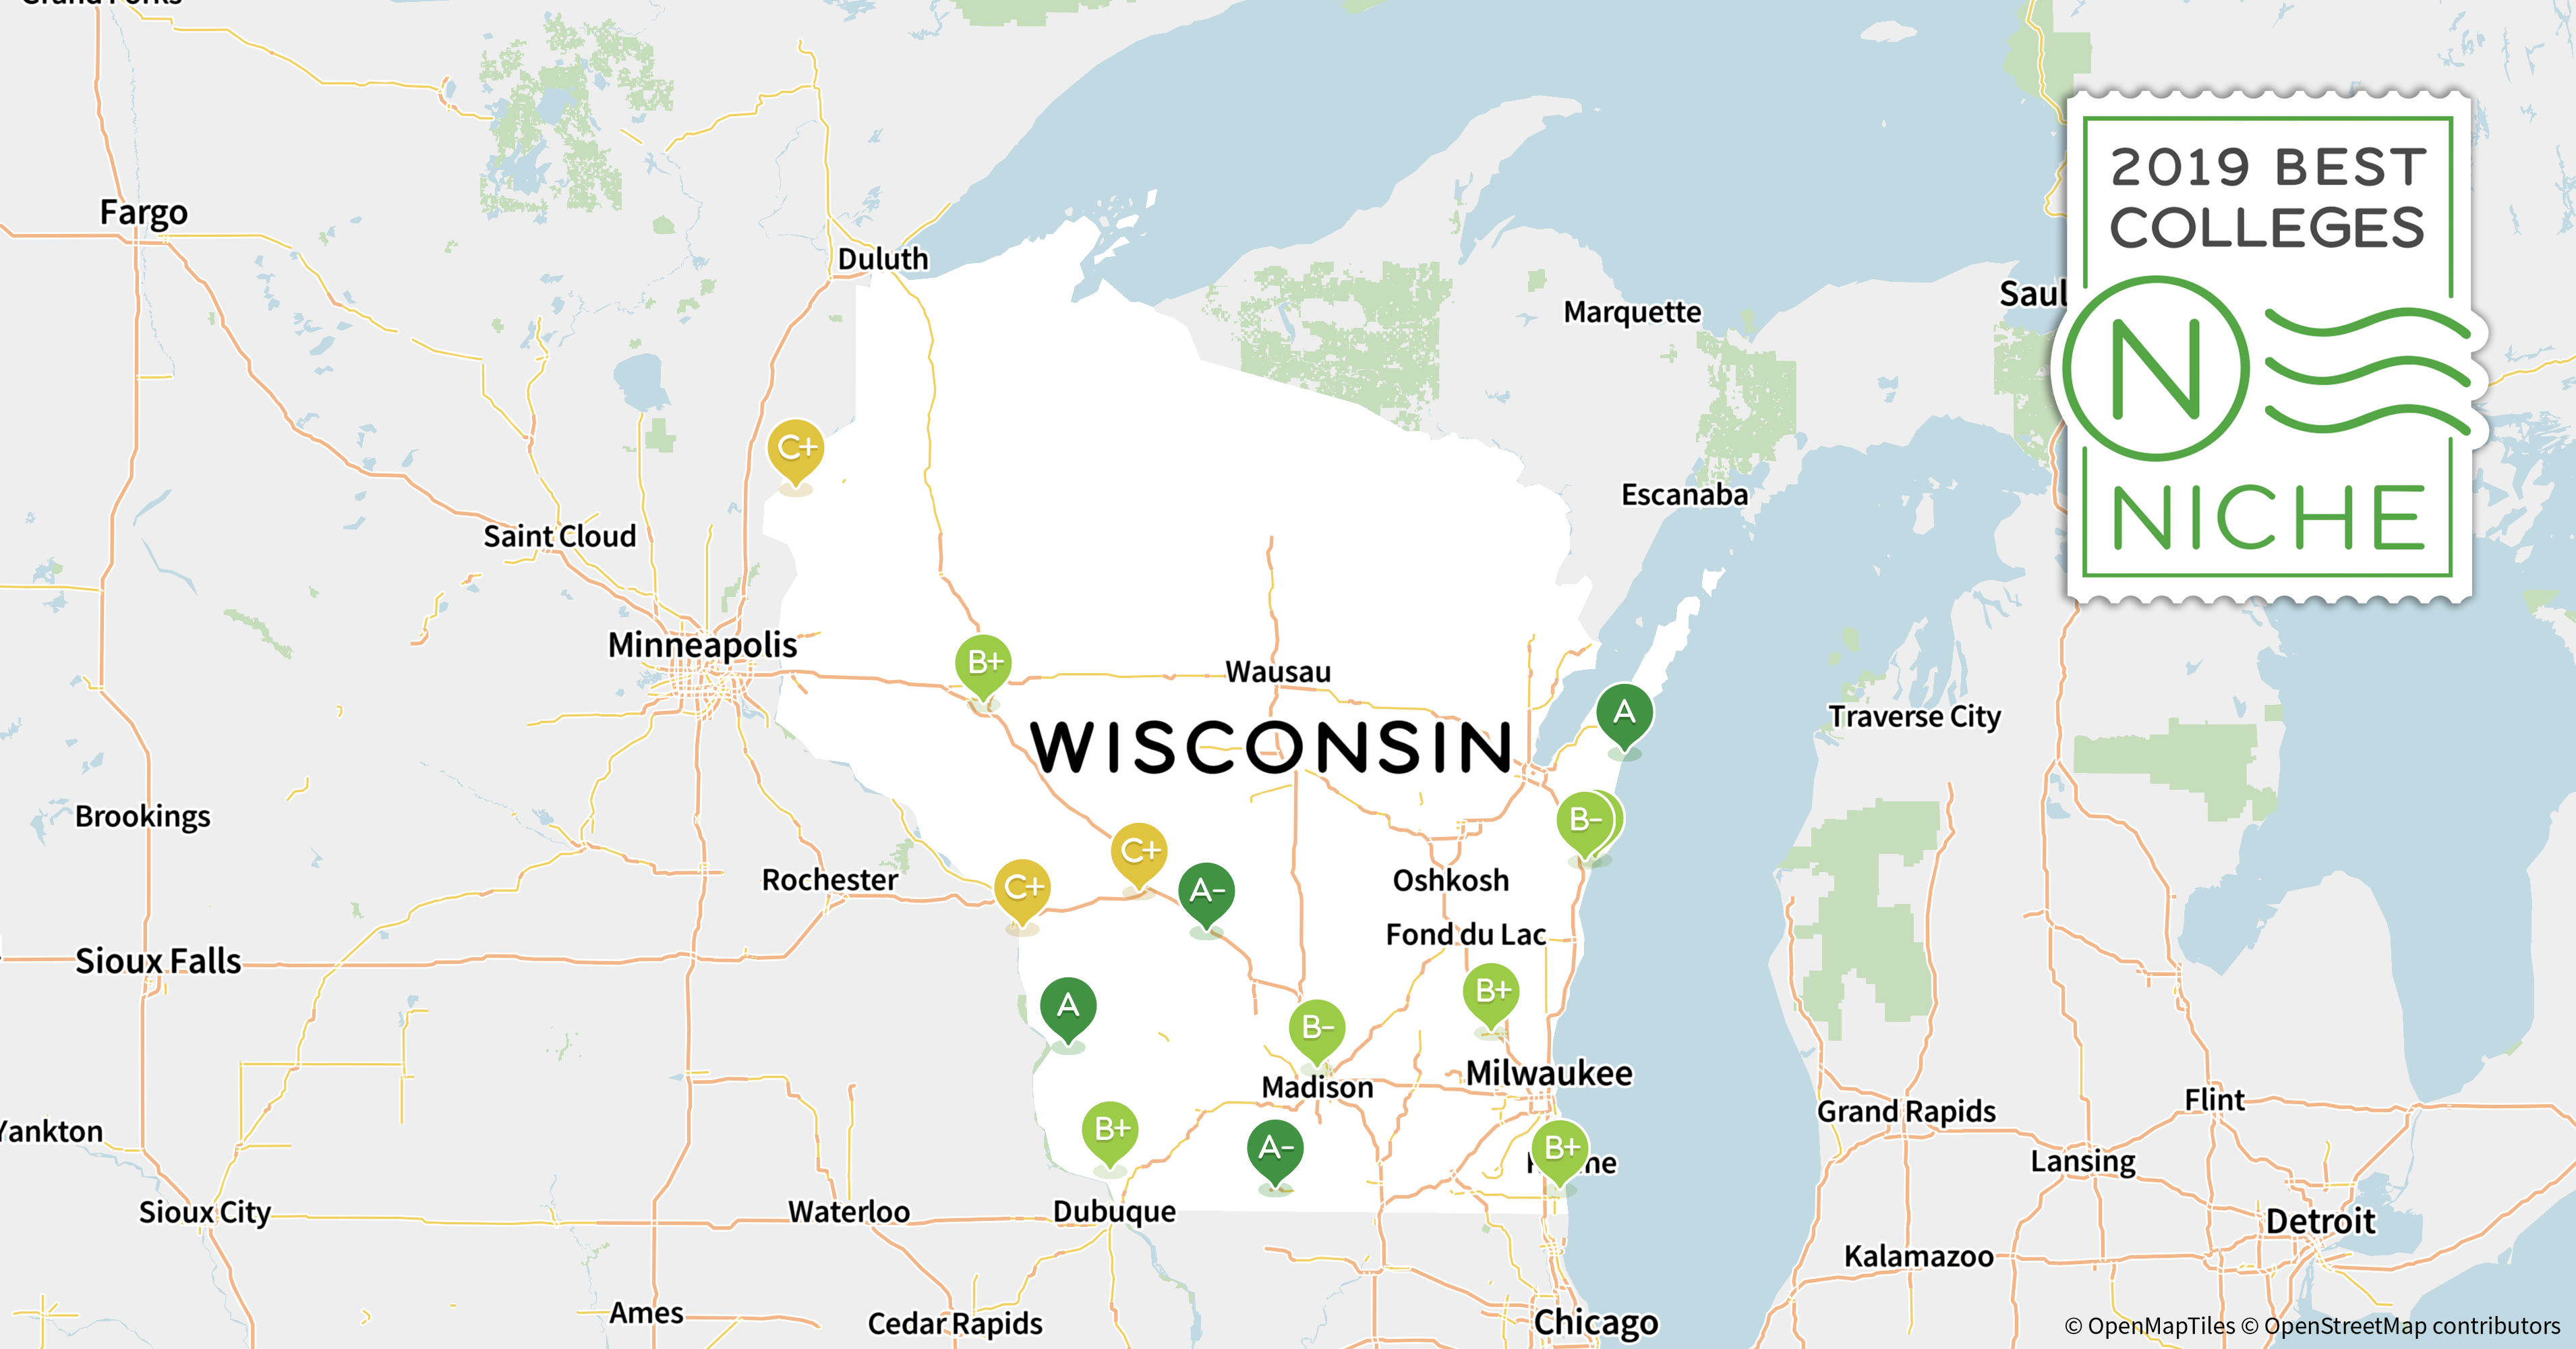 2019 Best Colleges In Wisconsin Niche